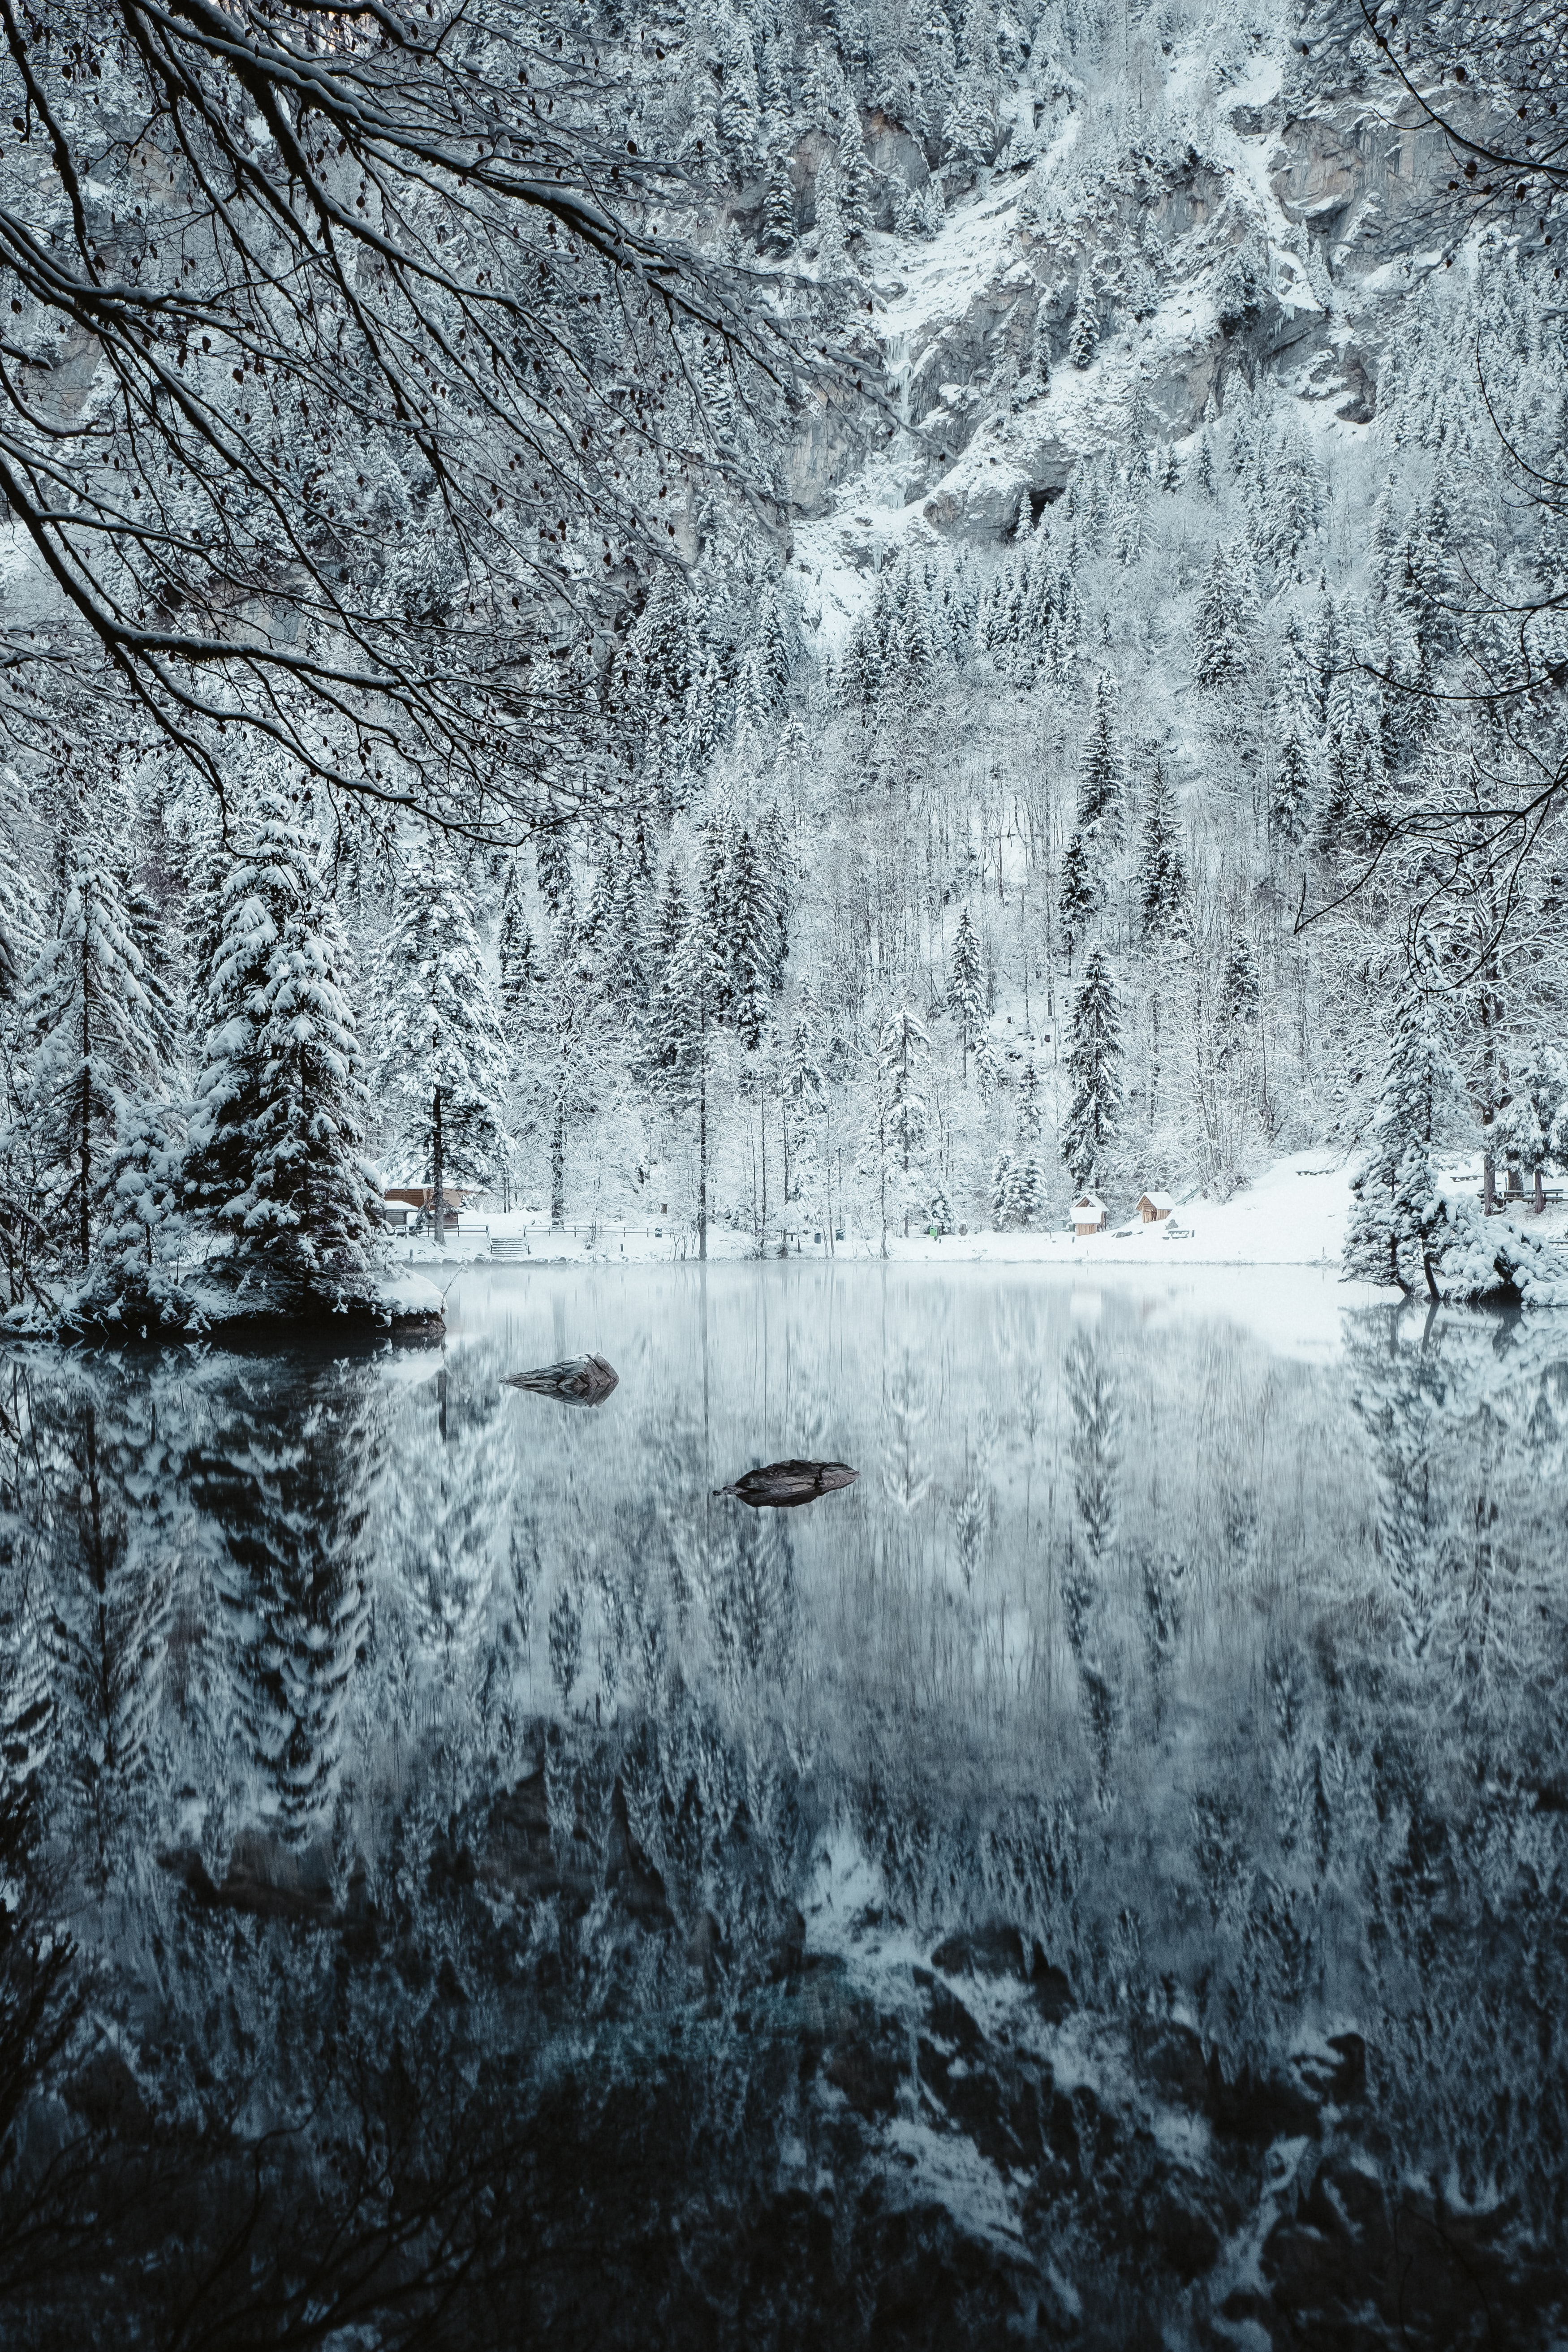 snow covered river and trees